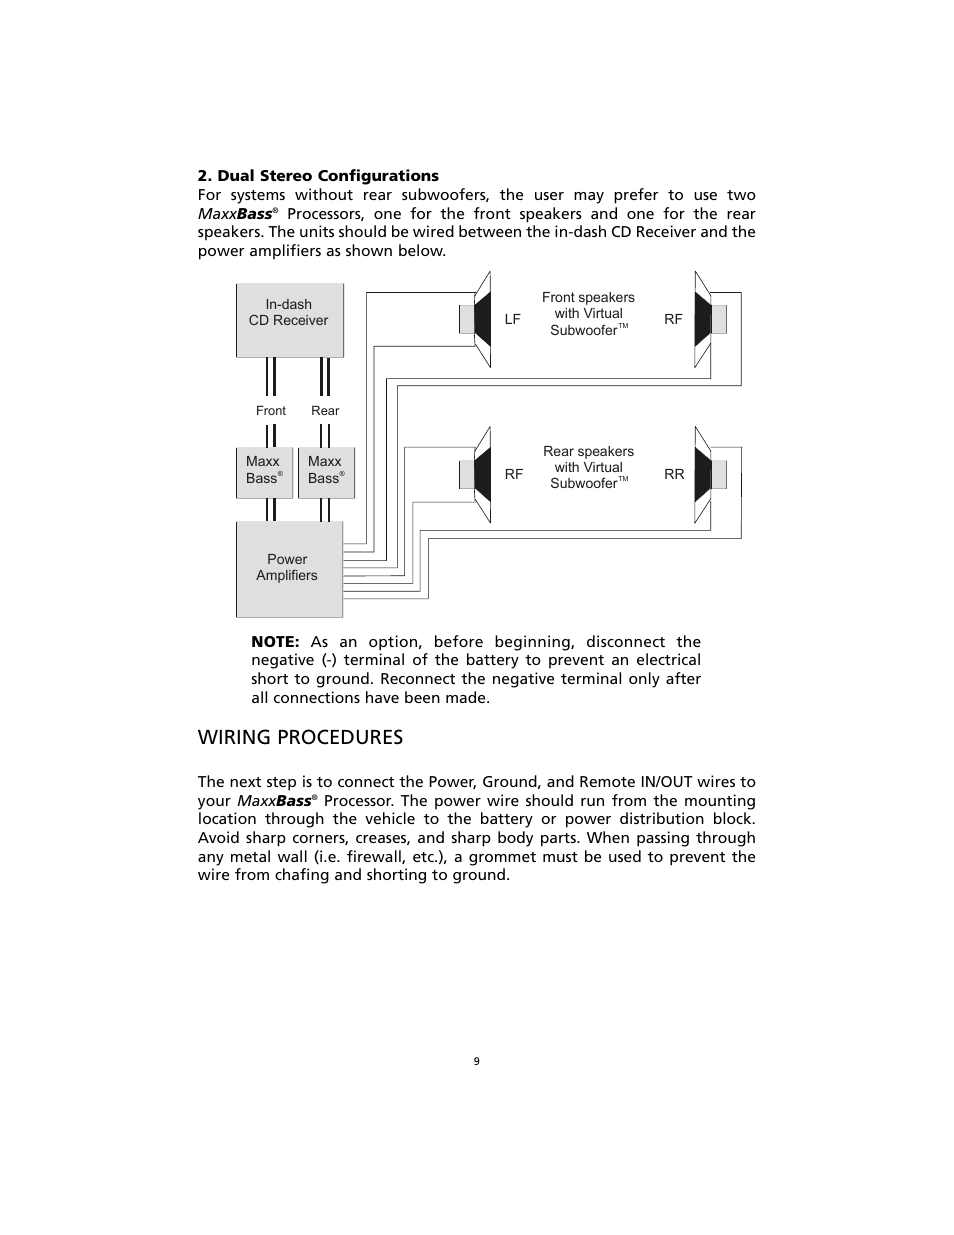 medium resolution of wiring procedures orion car audio orion maxxbass user manual page 10 17